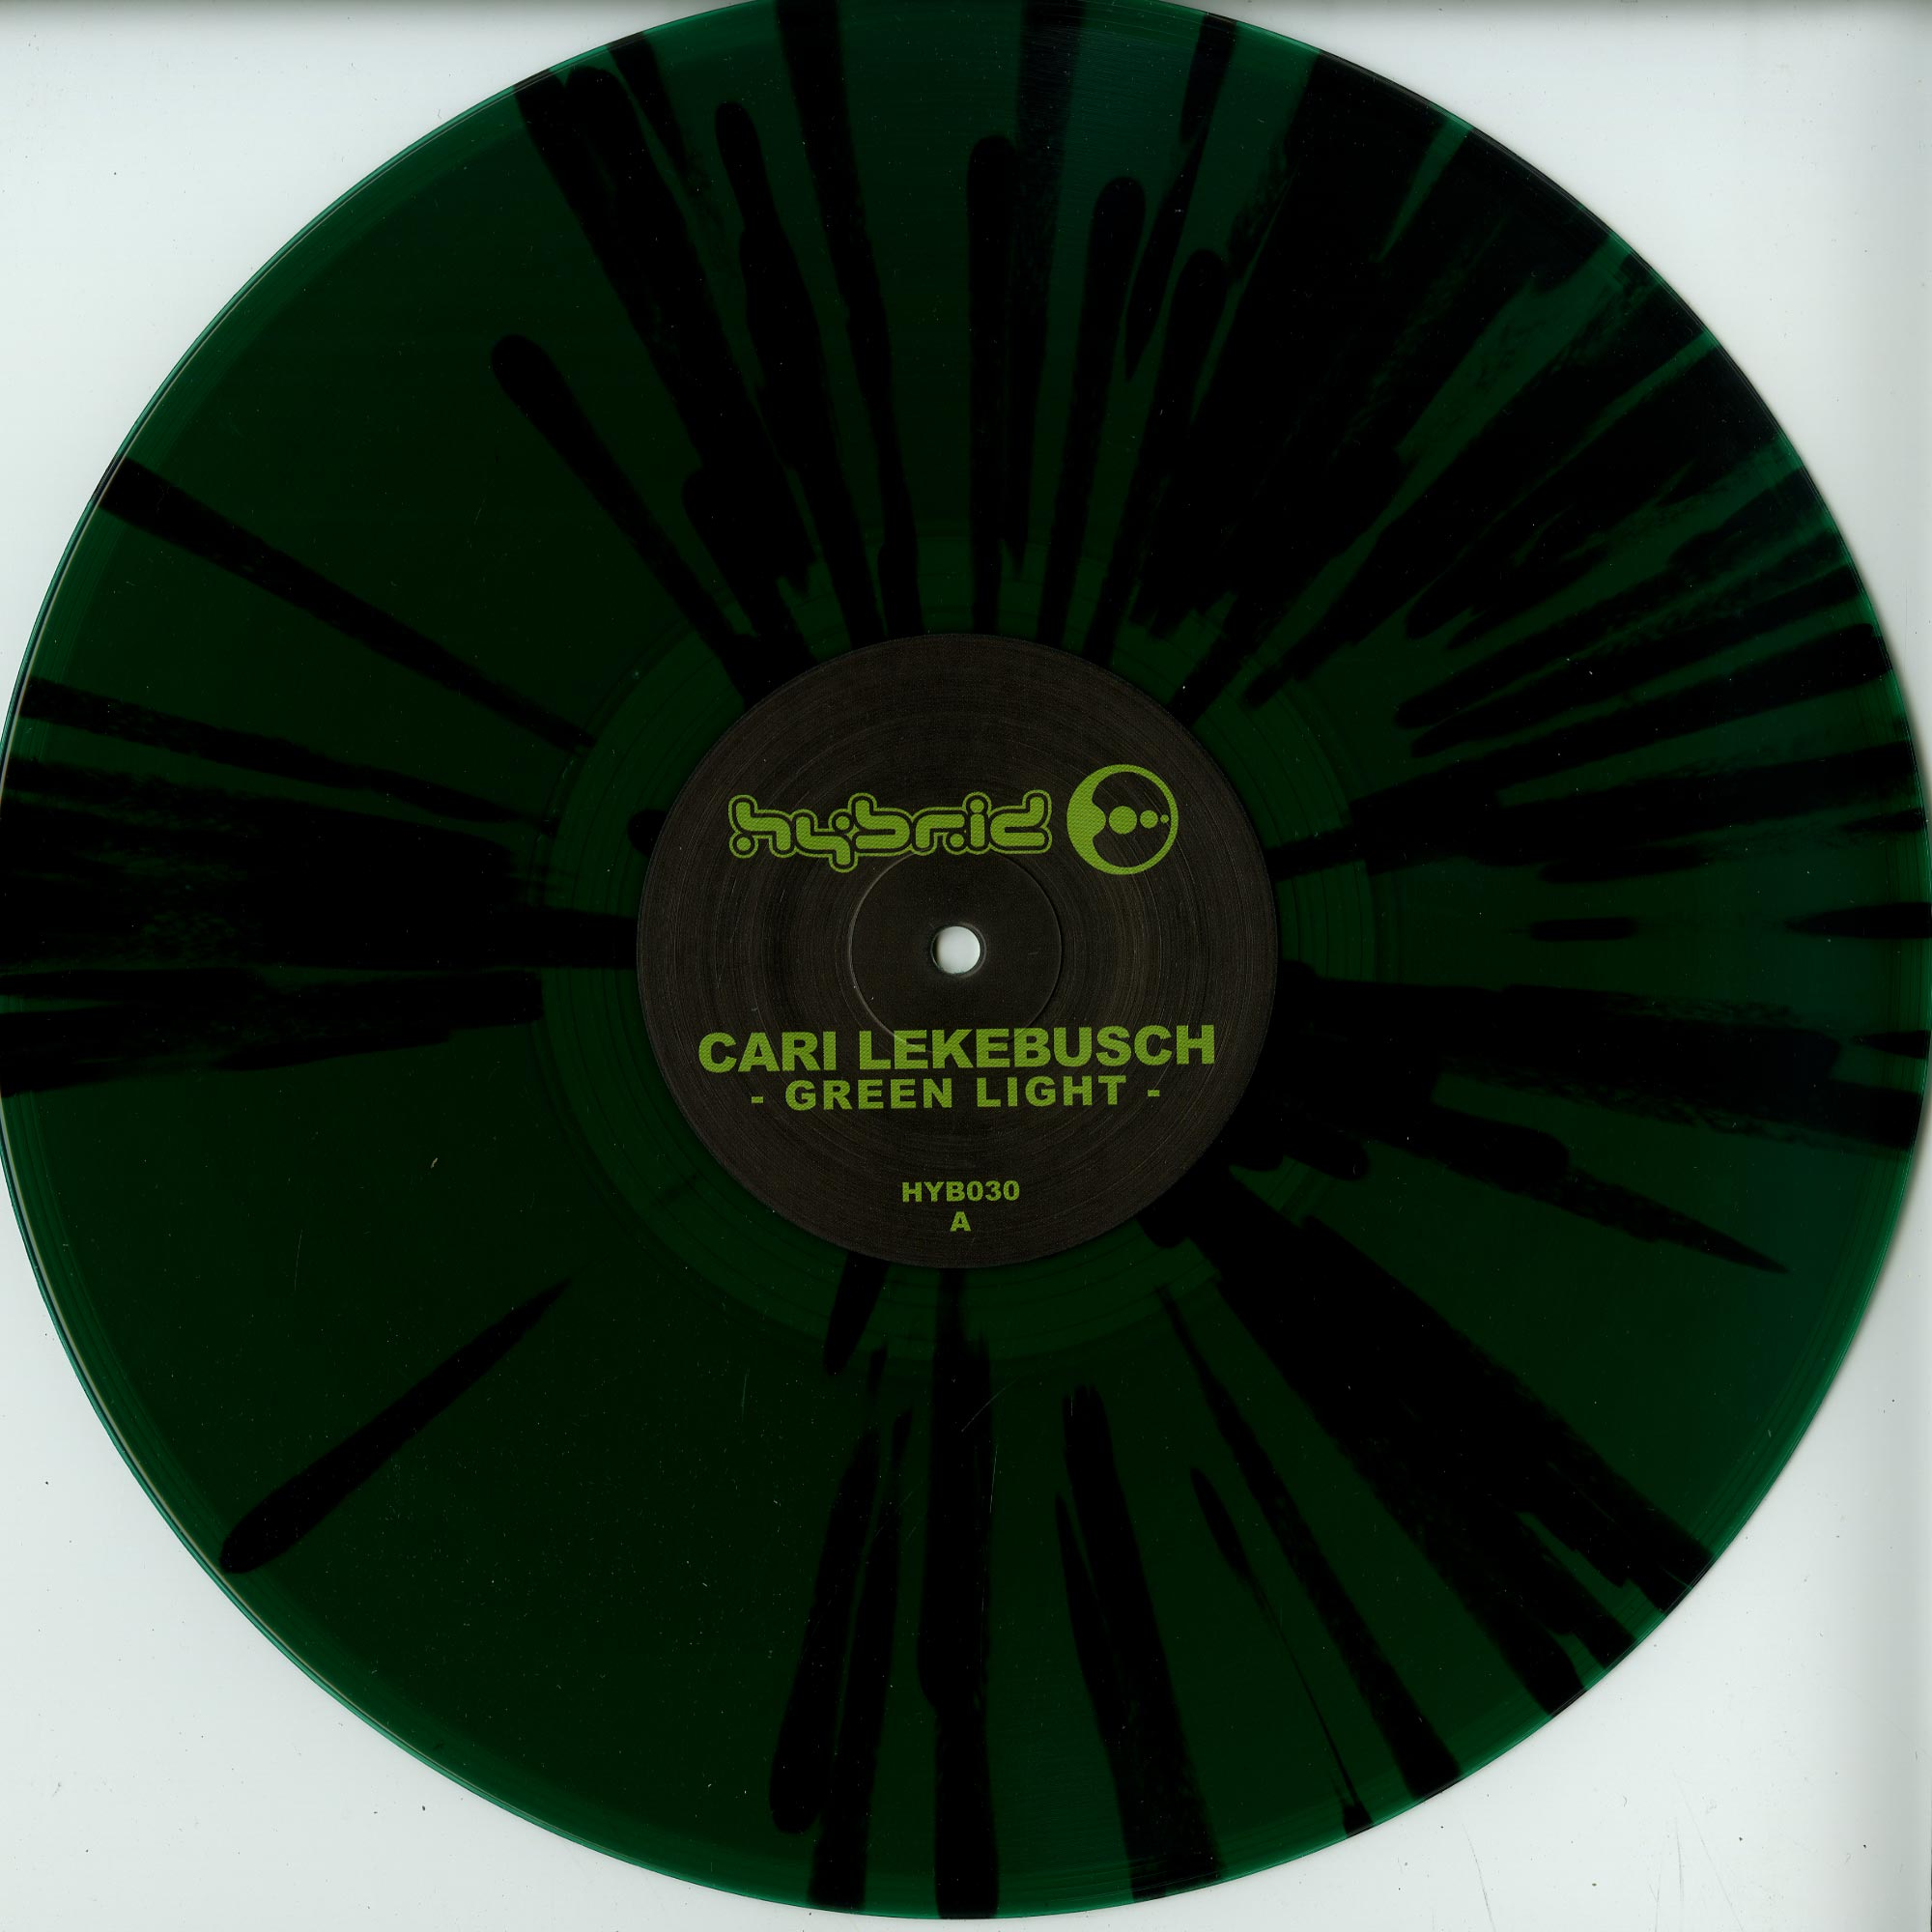 Cari Lekebusch - GREEN LIGHT